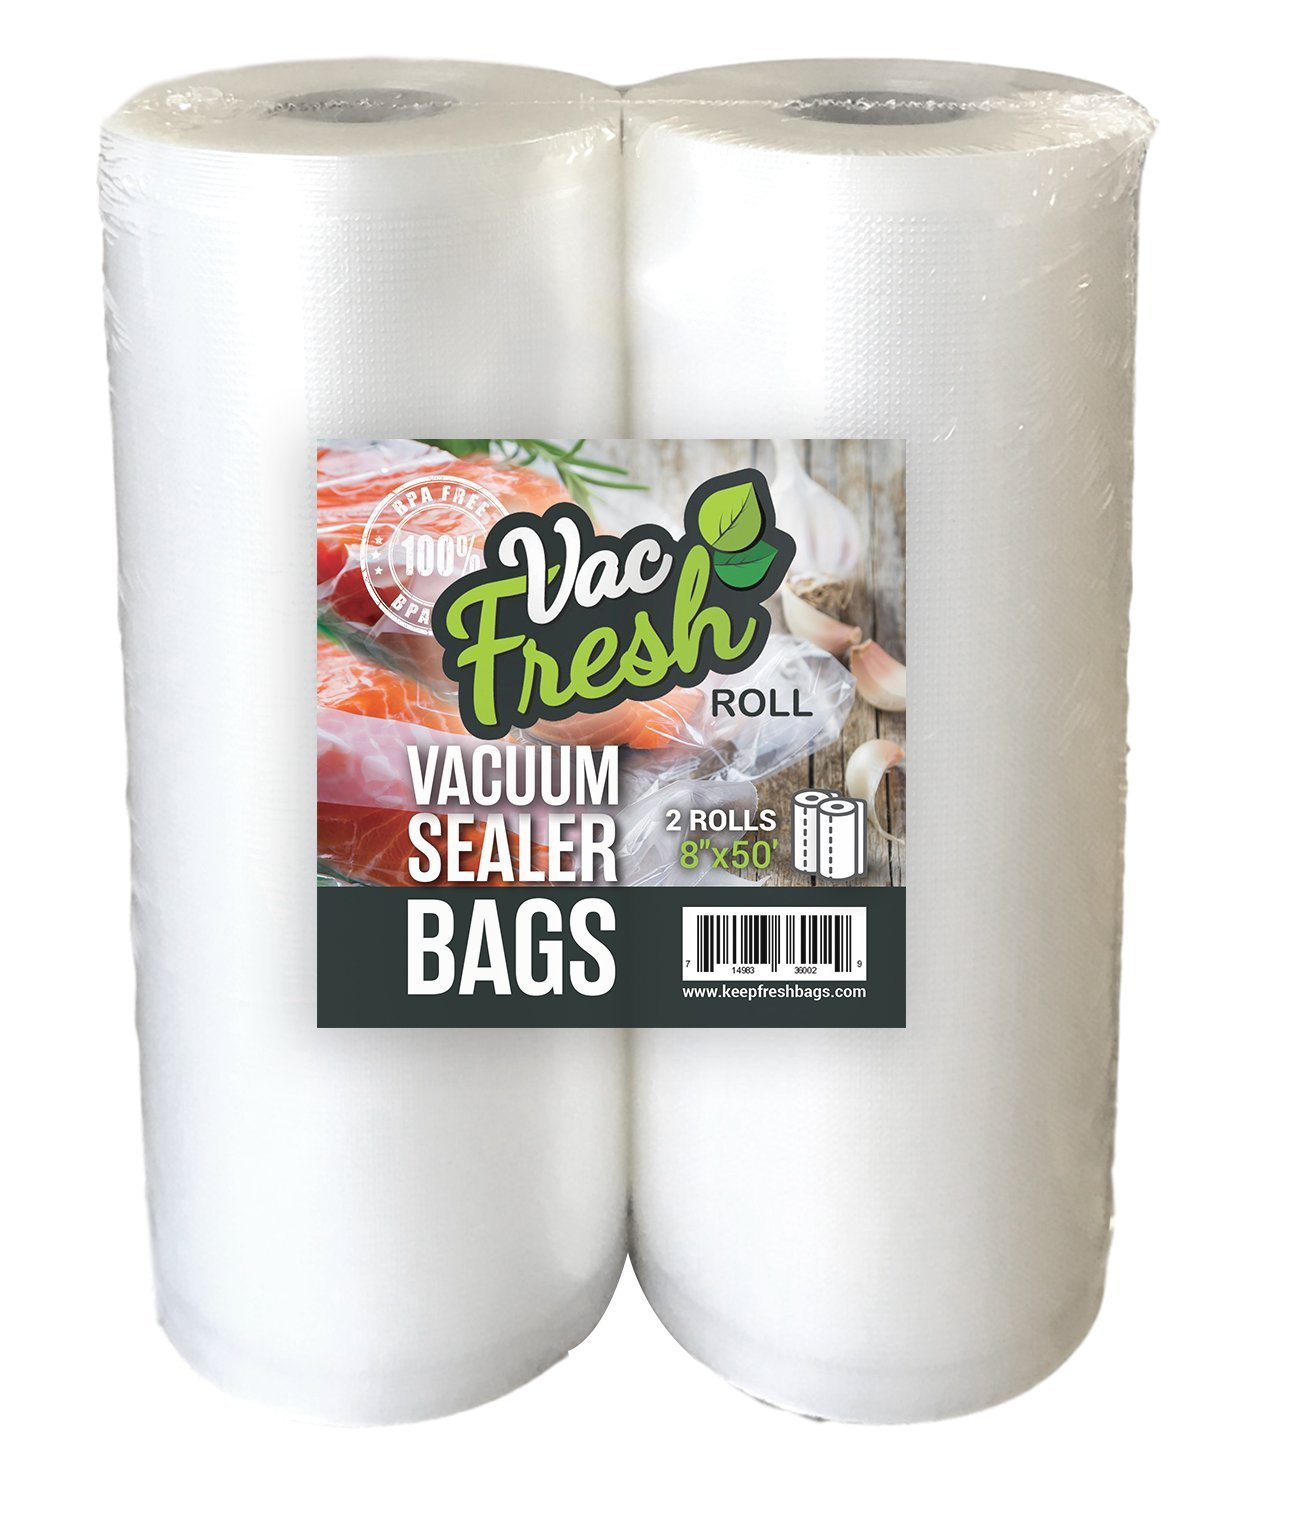 Vac-Fresh Roll 8x50 Vacuum Seal Bags 3.5mil for Food Vacuum Sealer Savers, 2 Rolls by Vac-Fresh Roll